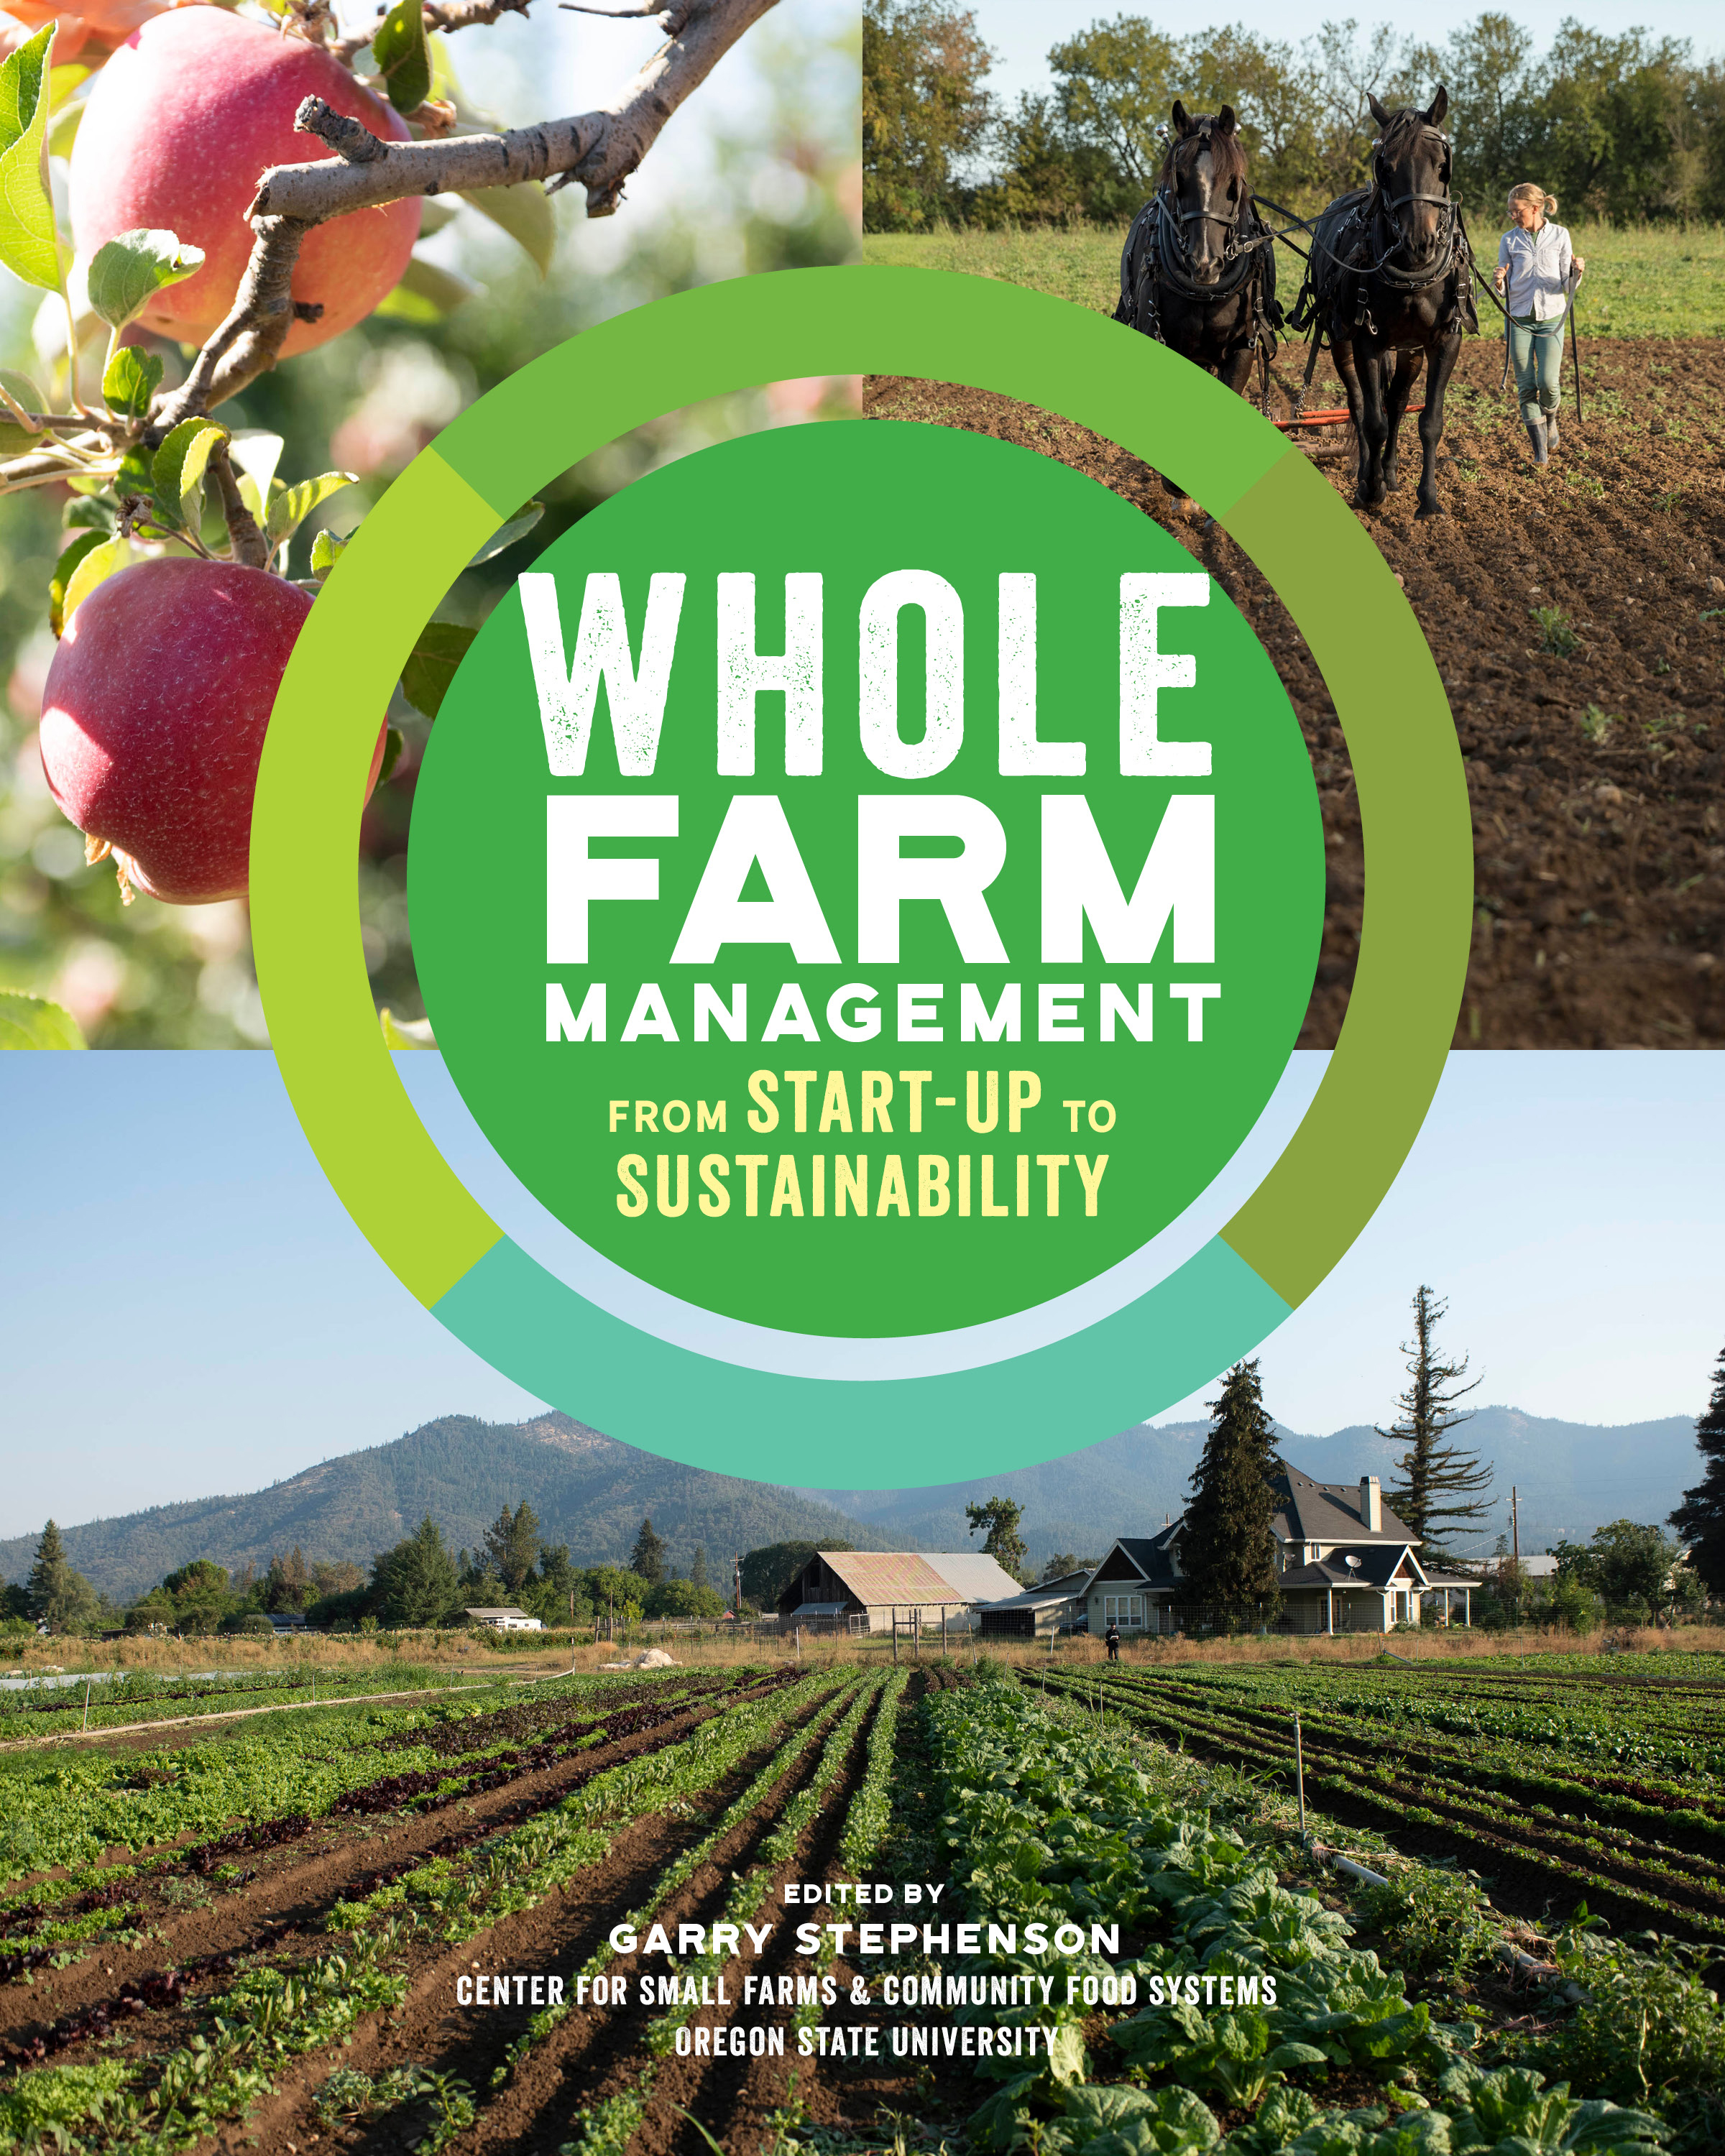 Whole Farm Management From Start-Up to Sustainability - Garry Stephenson